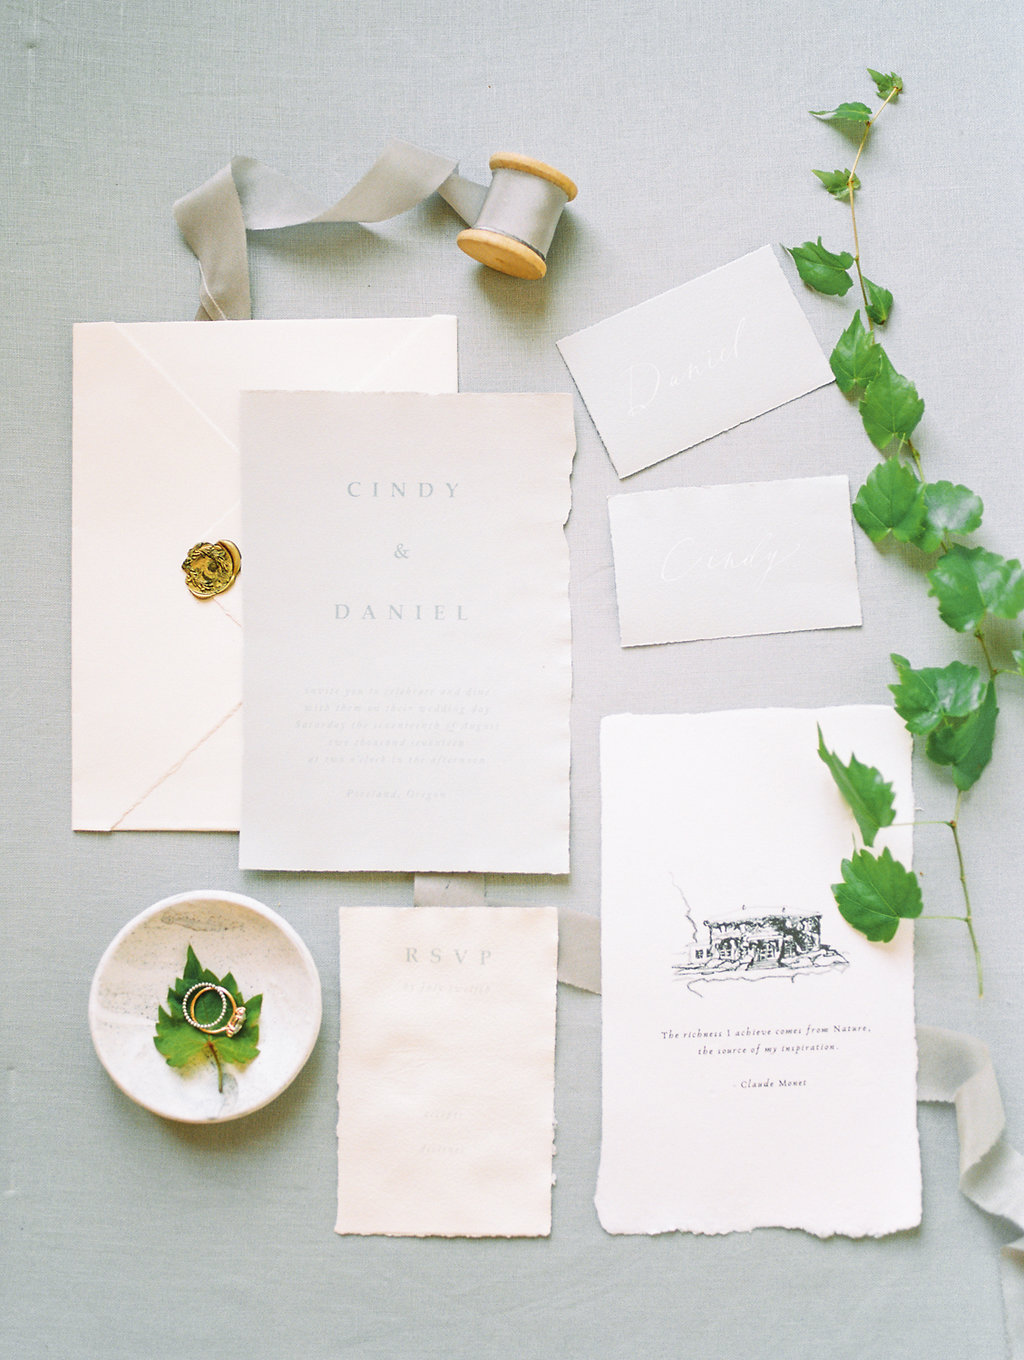 LuxProvenceWeddingInspired-SavanMentorshipbyJonandMochPhotography(2of75).jpg